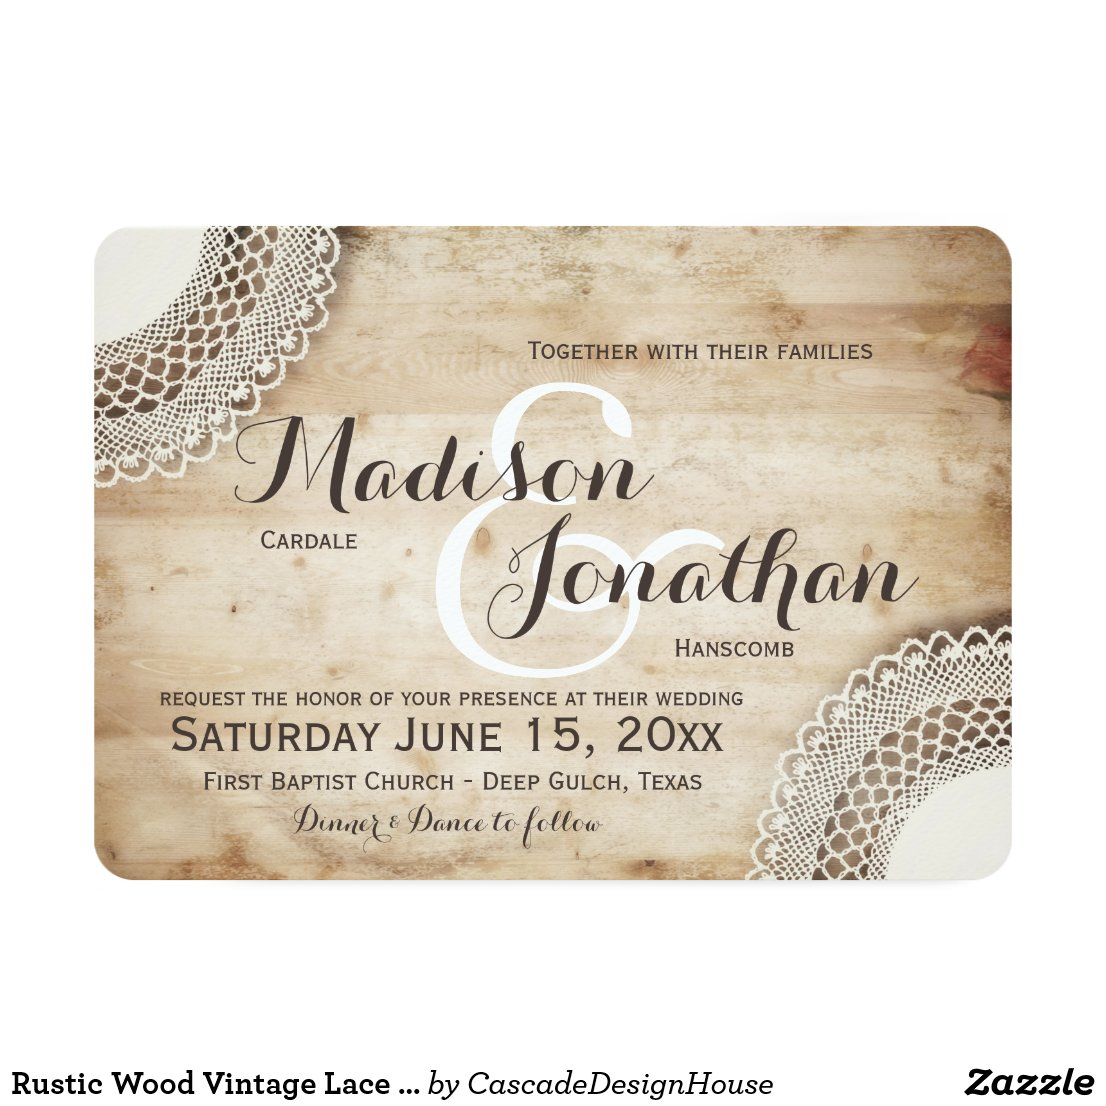 rustic wedding invitations - Vatoz.atozdevelopment.co